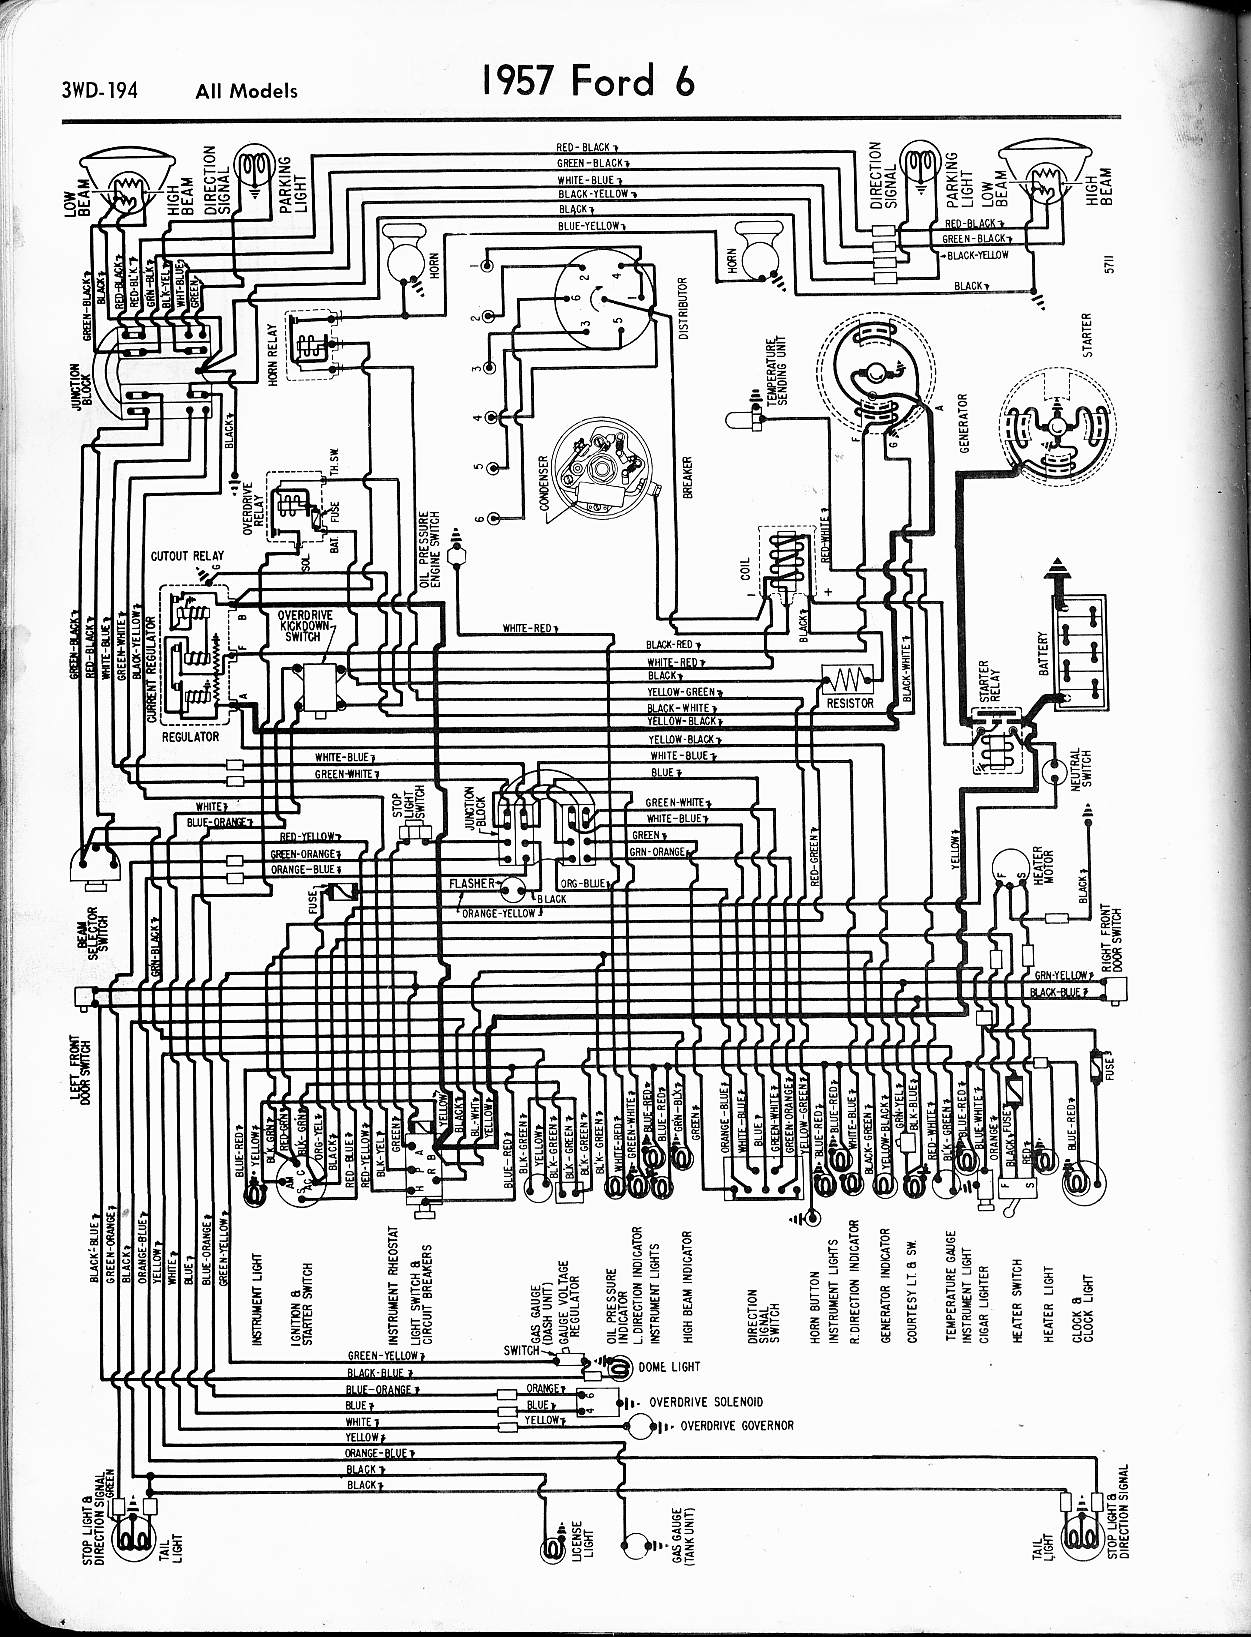 1995 ford truck foldout wiring diagram f600 f700 ft900 f800 cab